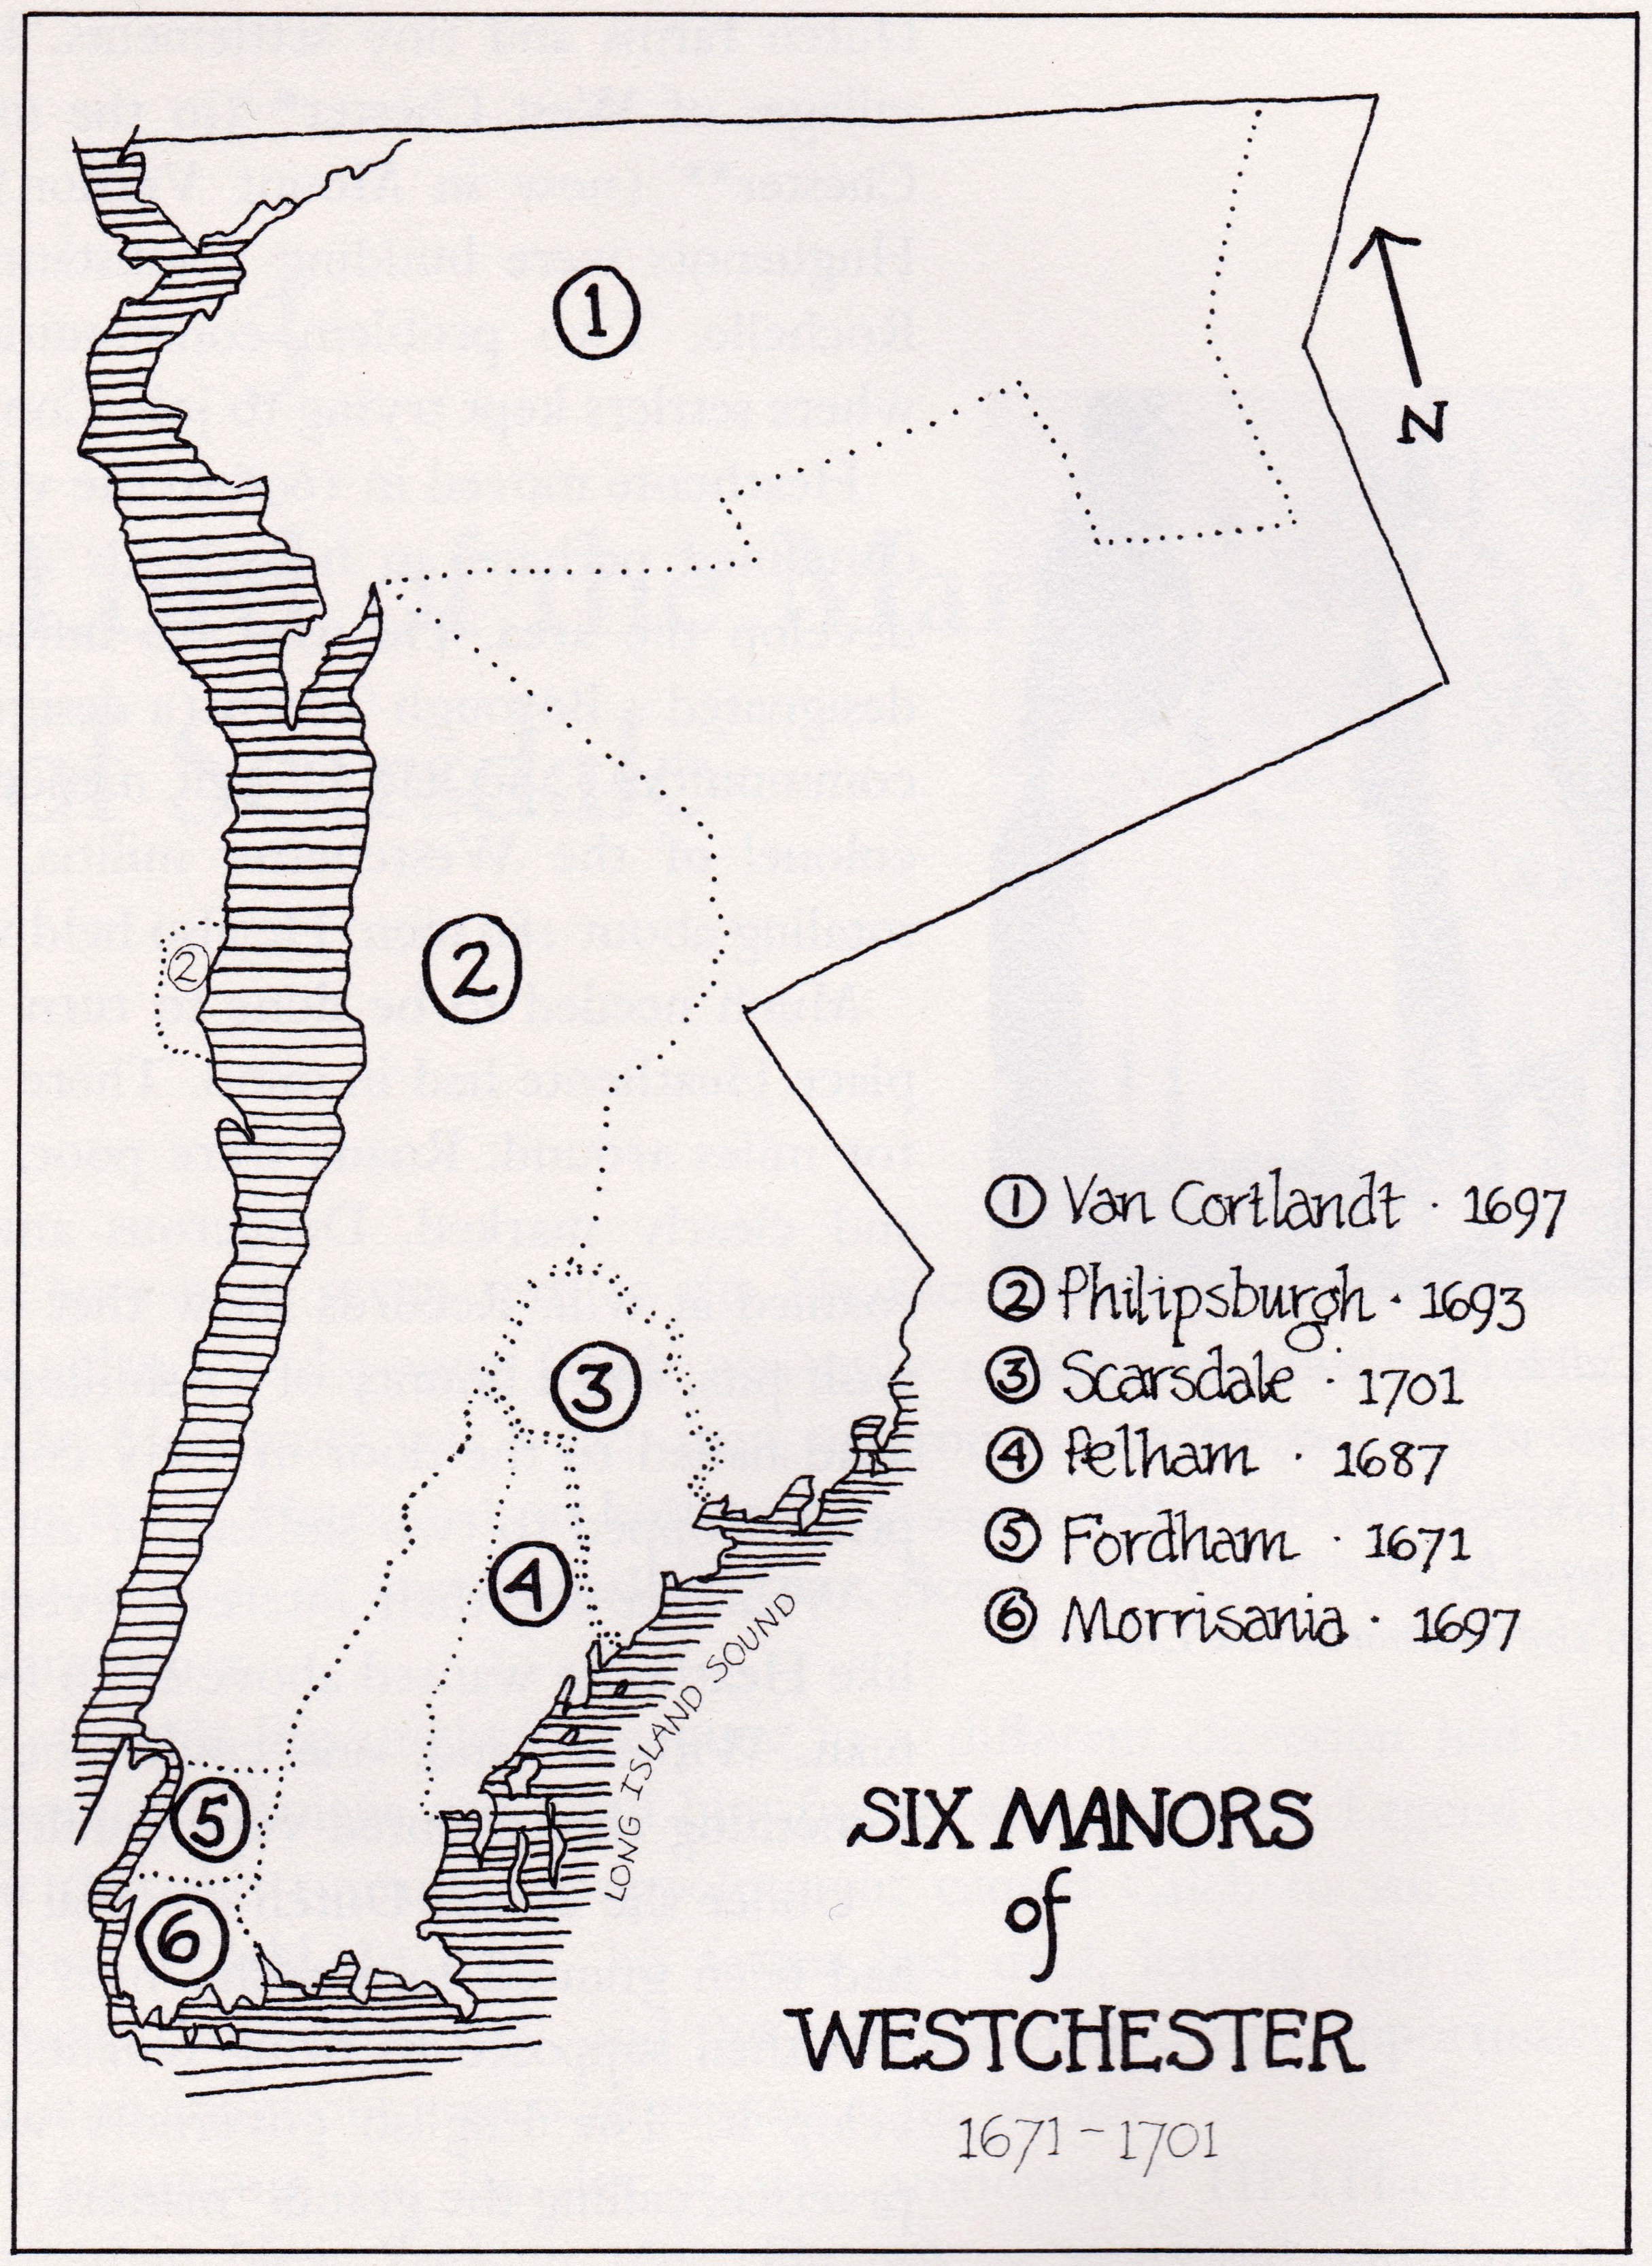 Under English rule, Westchester was divided into six Manors. They included Pelham, founded in 1666; Fordham in 1671; Phillipsburg in 1693; Morrisania; Cortlandt in 1697; and Scarsdale in 1701. Map from  Colonists and Commuters, A History of Scarsdale  by Dianna Reische.